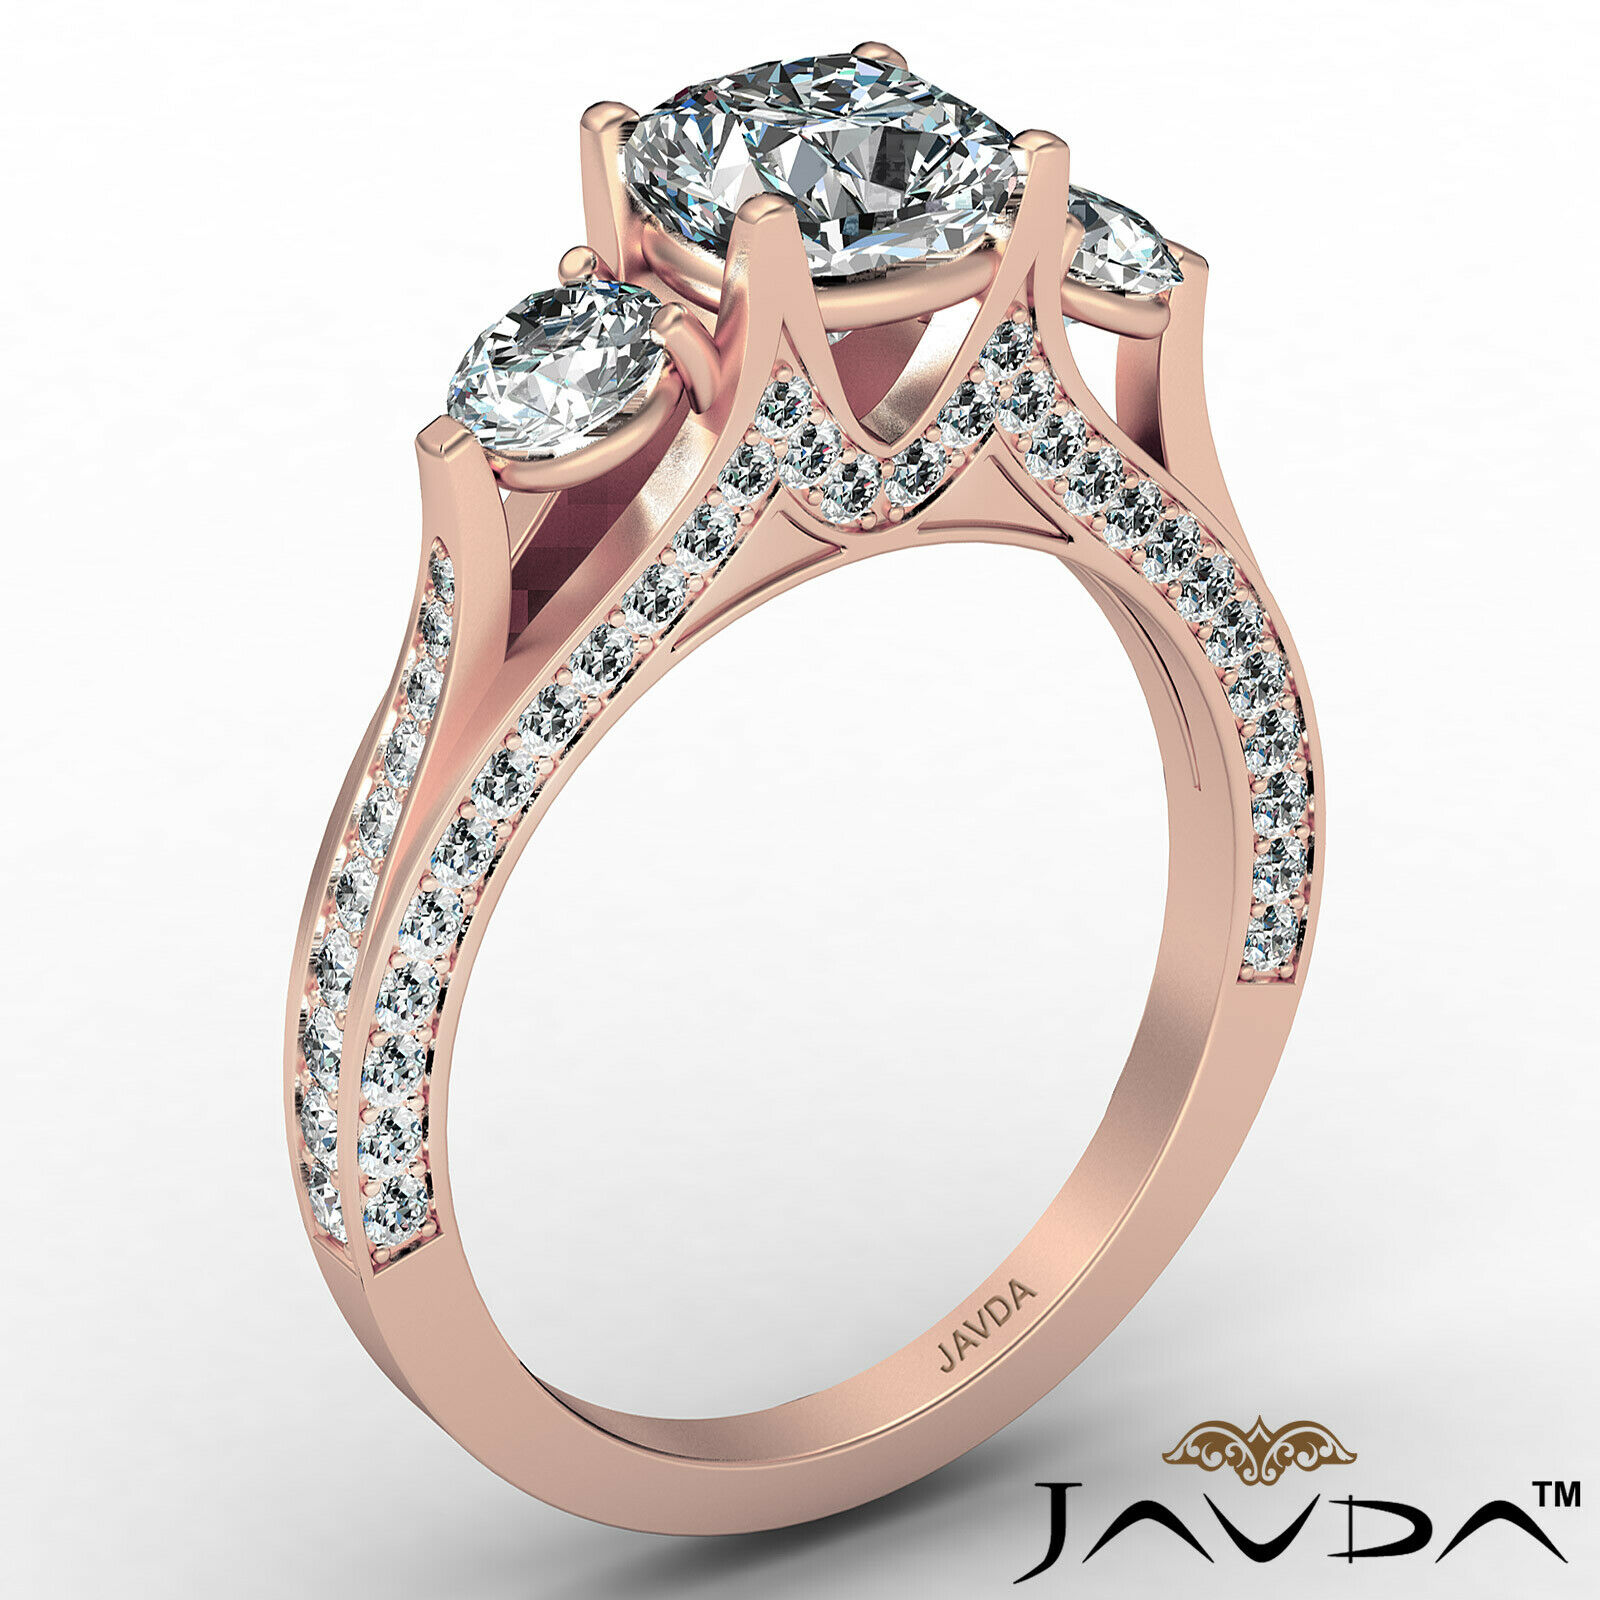 Cushion Diamond Engagement Ring Certified by GIA E Color & VVS1 clarity 2.1 ctw 5